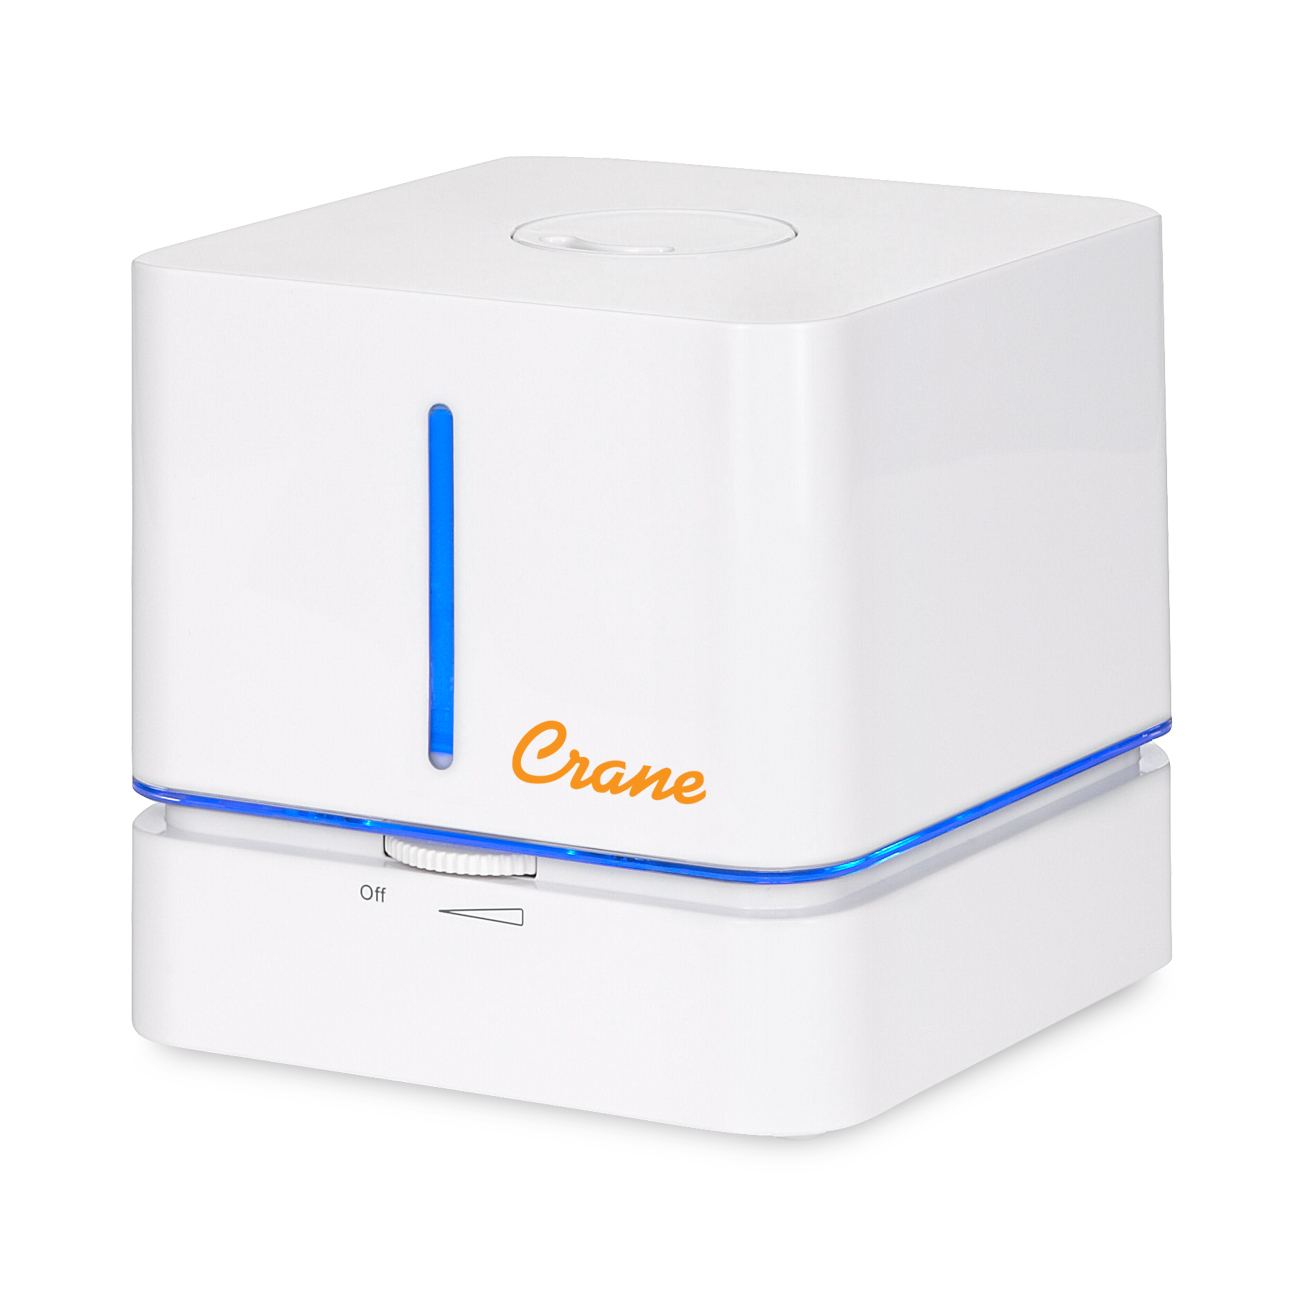 Crane Personal Cool Mist Humidifier - Cube